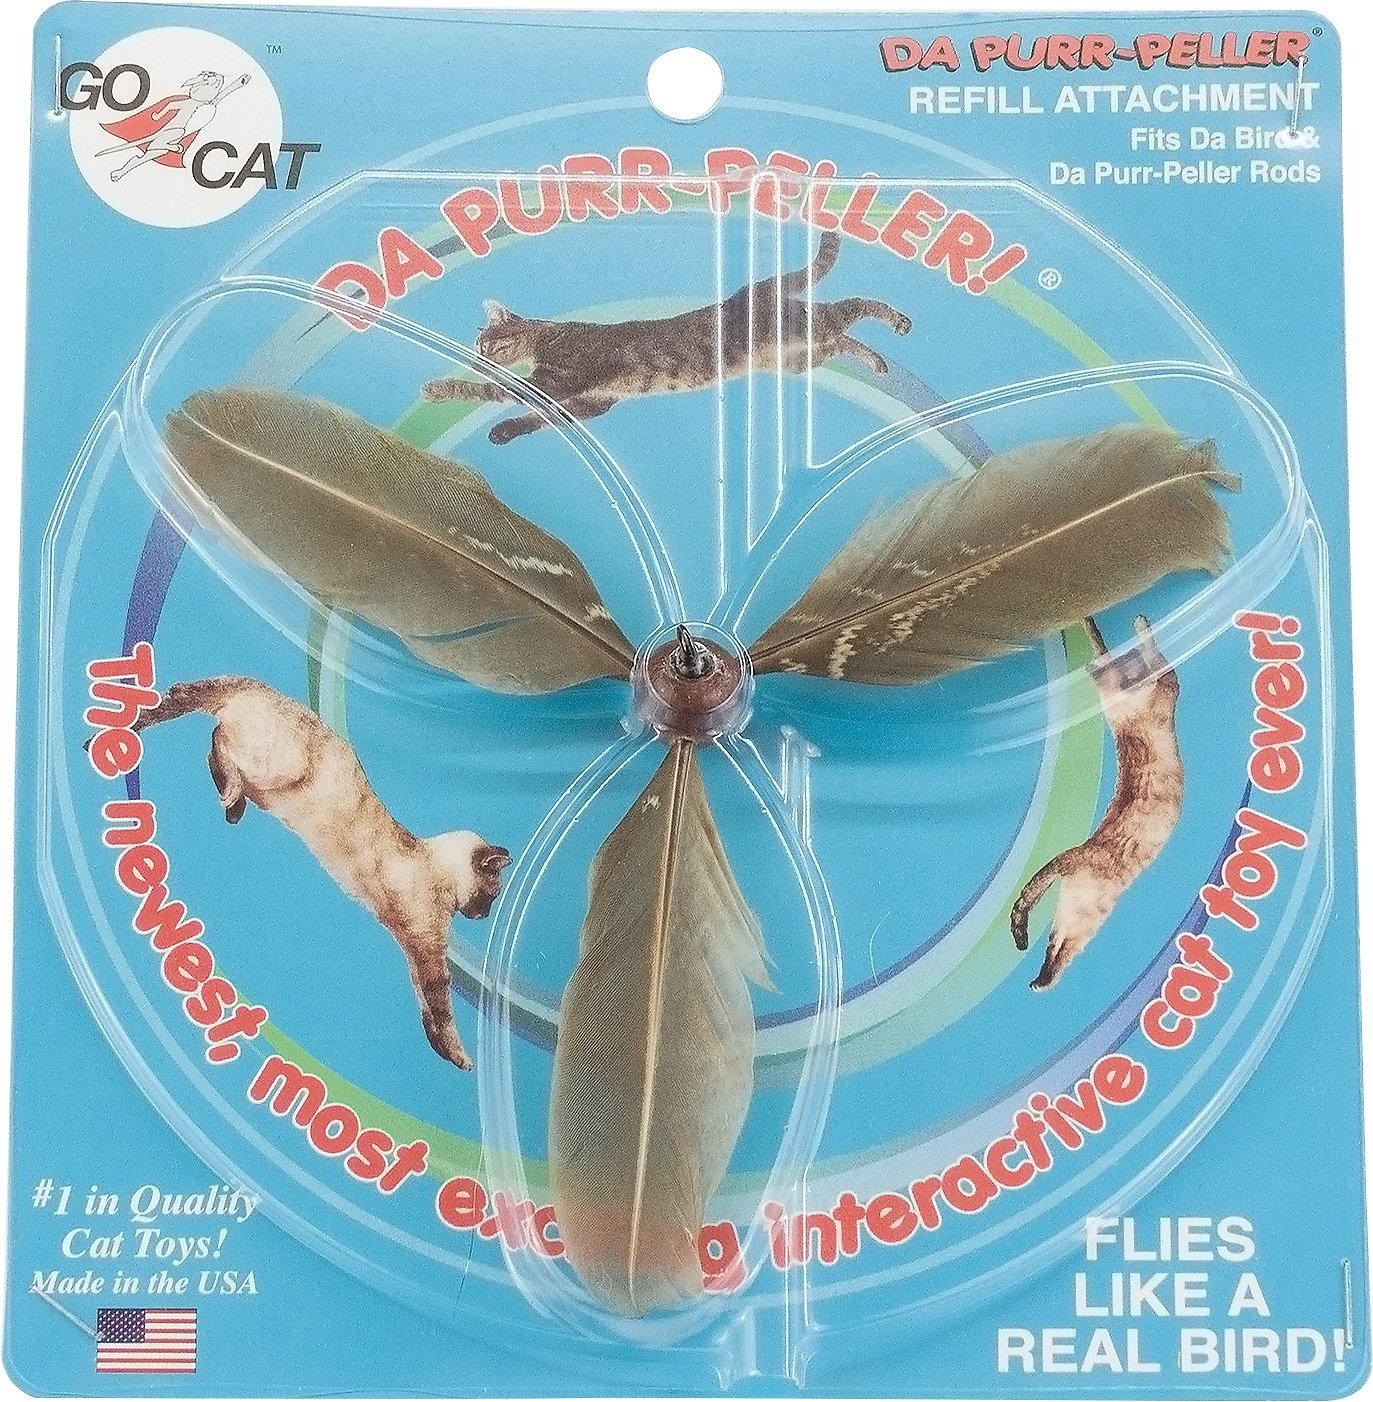 Go Cat Da Purr-Peller Refill Cat Toy